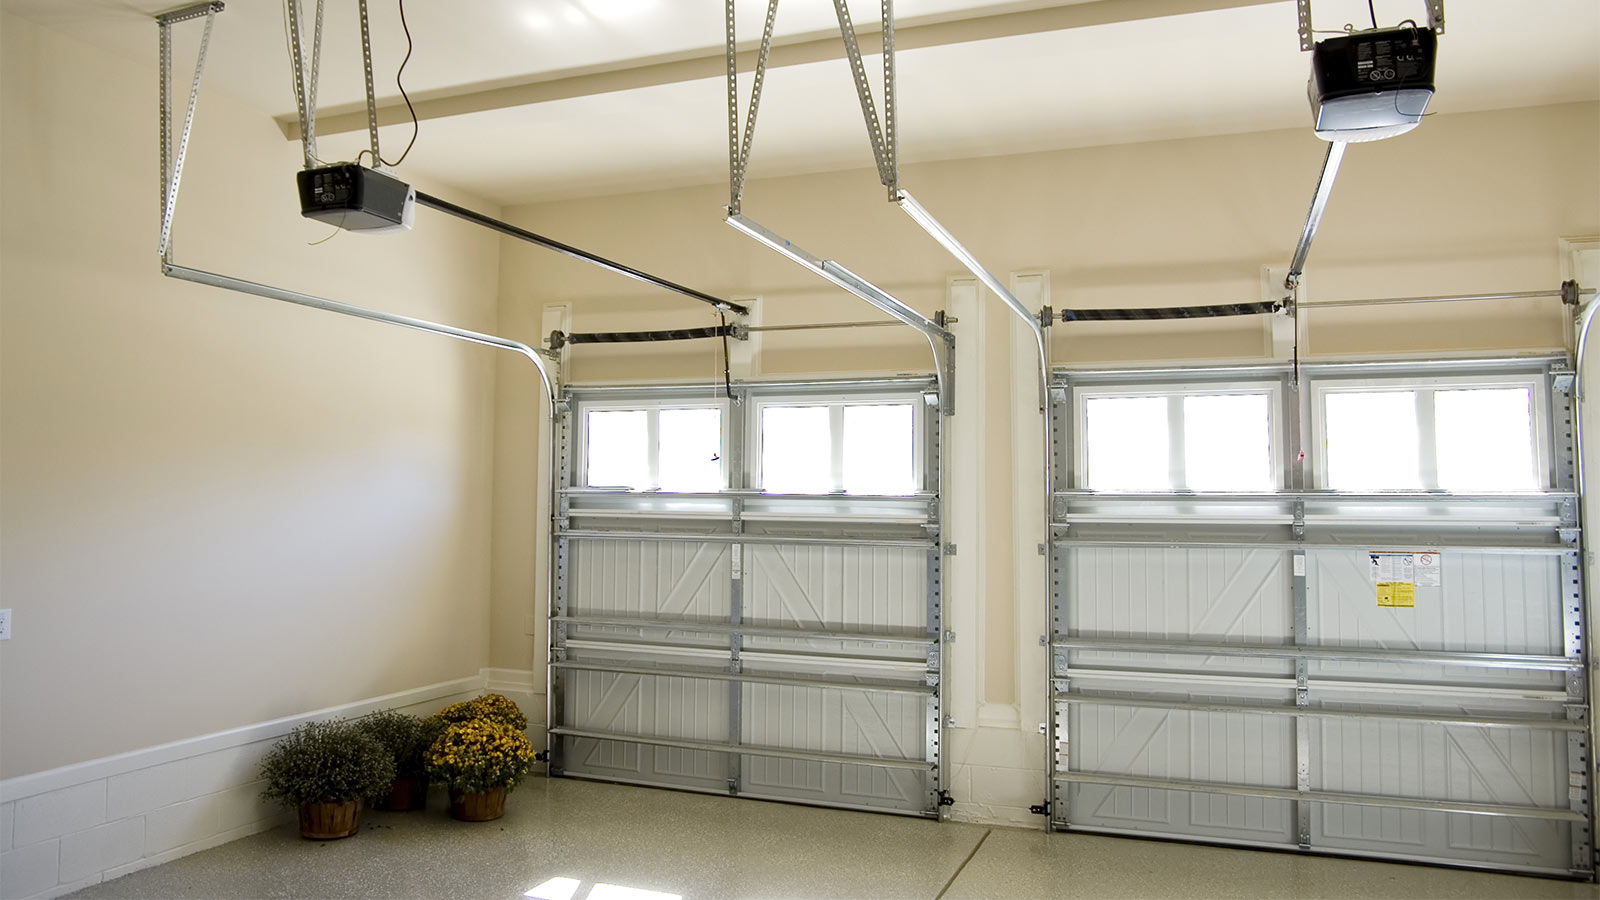 Sectional Garage Doors from Roller Shutters Basildon suppliers.